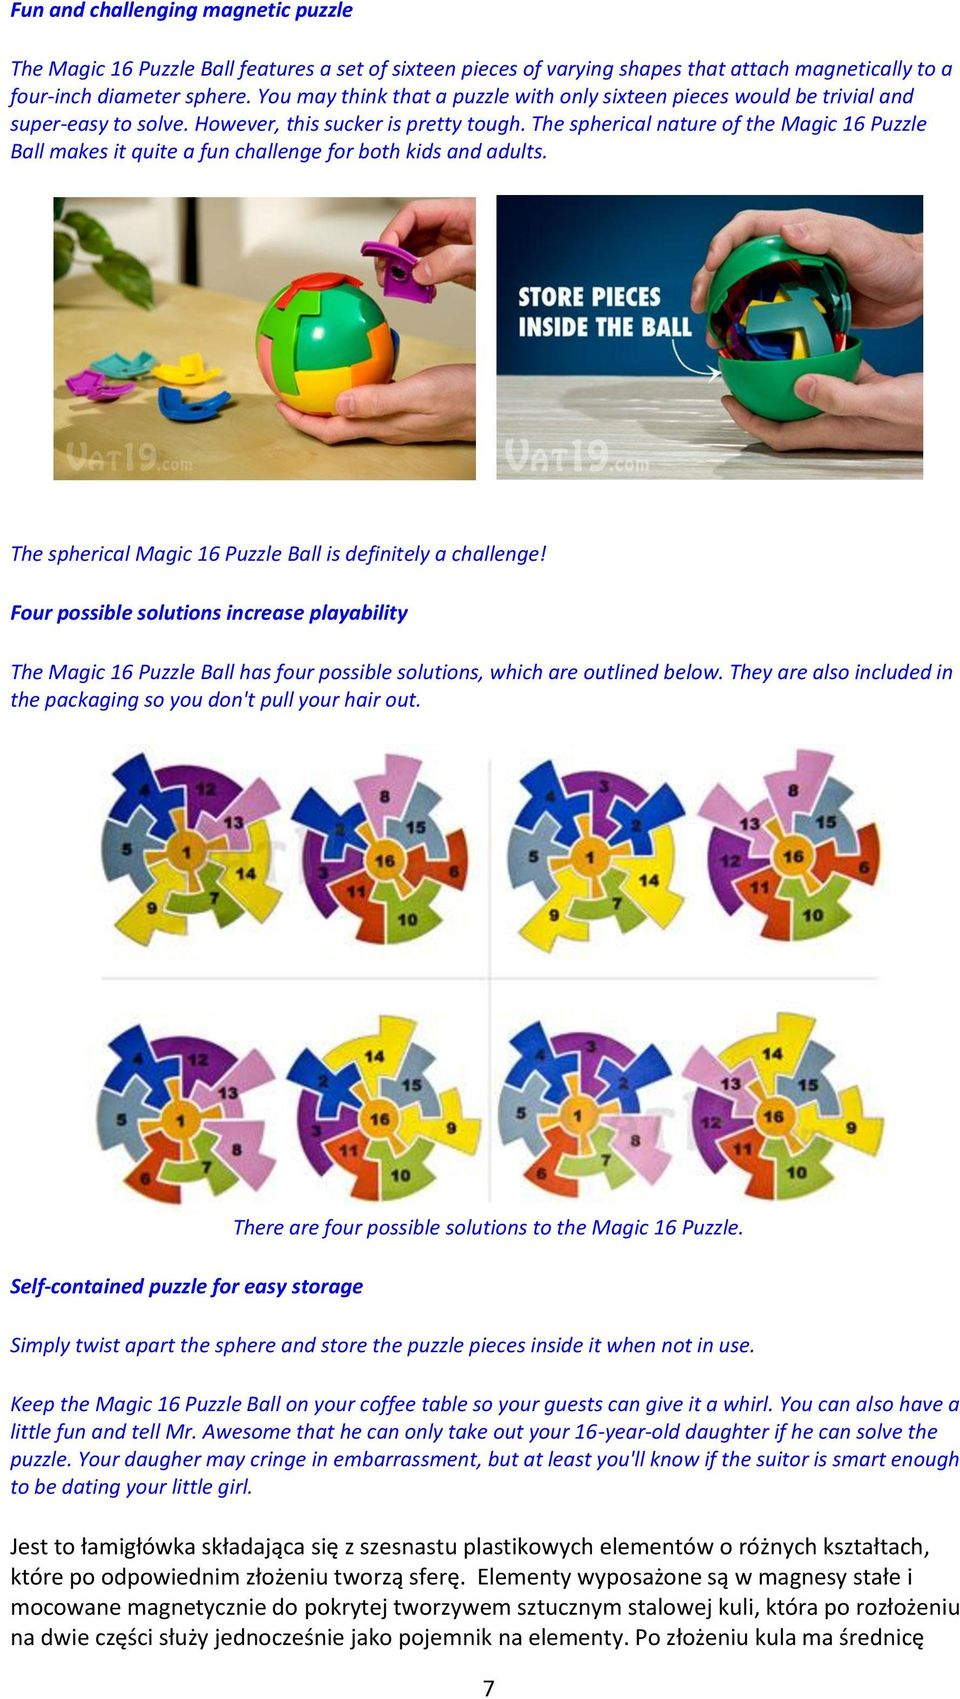 The spherical nature of the Magic 16 Puzzle Ball makes it quite a fun challenge for both kids and adults. The spherical Magic 16 Puzzle Ball is definitely a challenge!